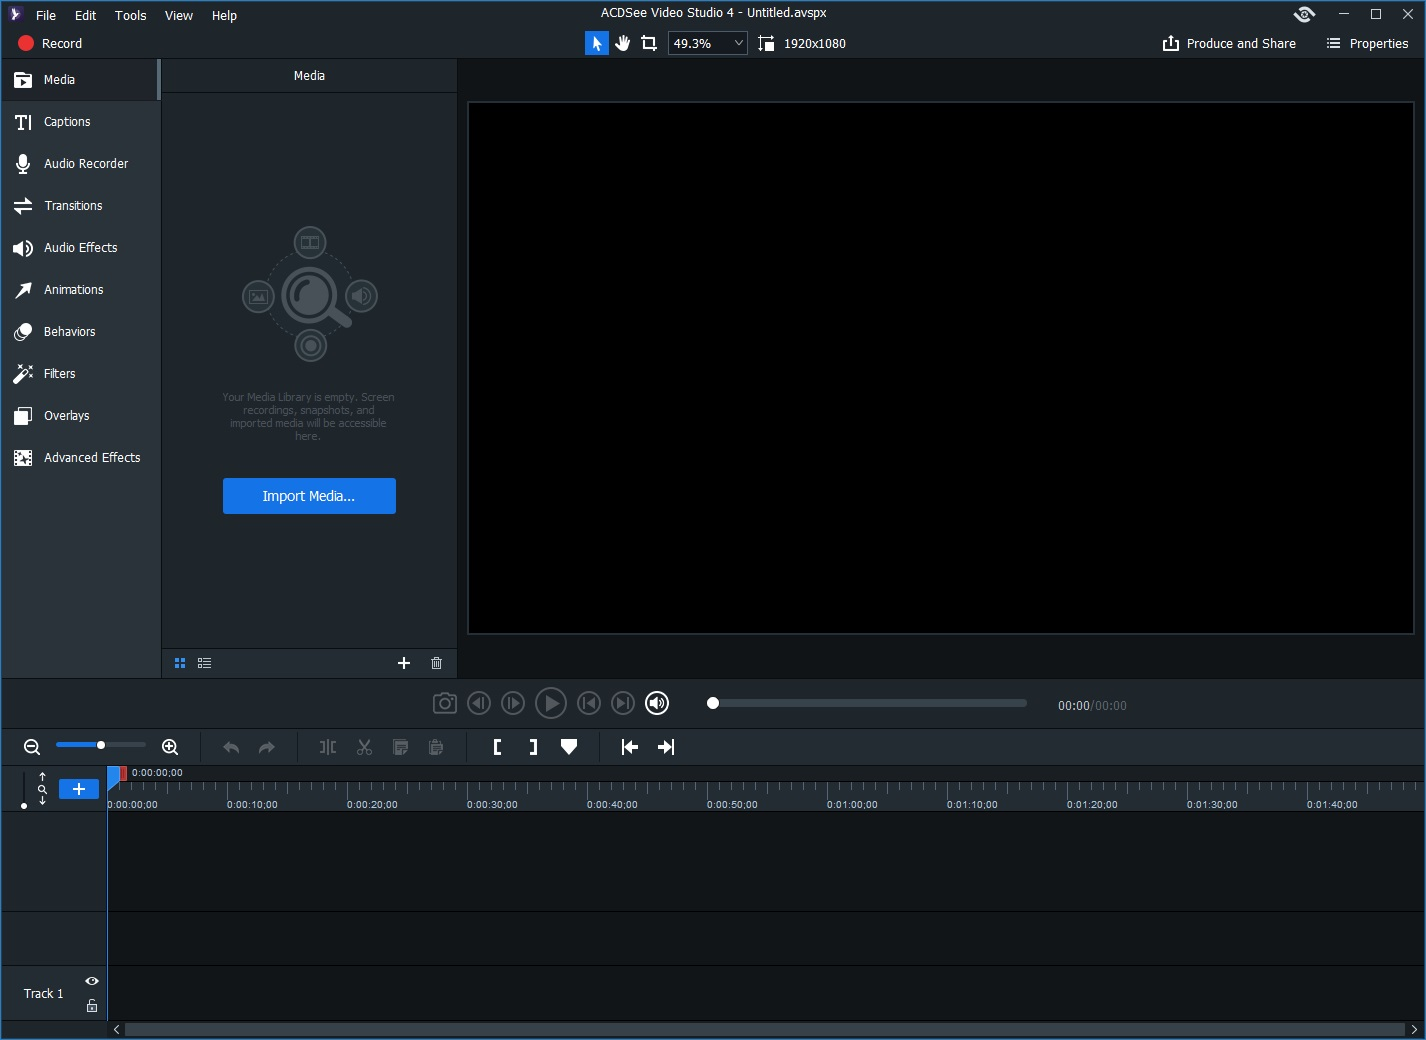 ACDSee Video Studio 4.0.0.893 x64 - ENG